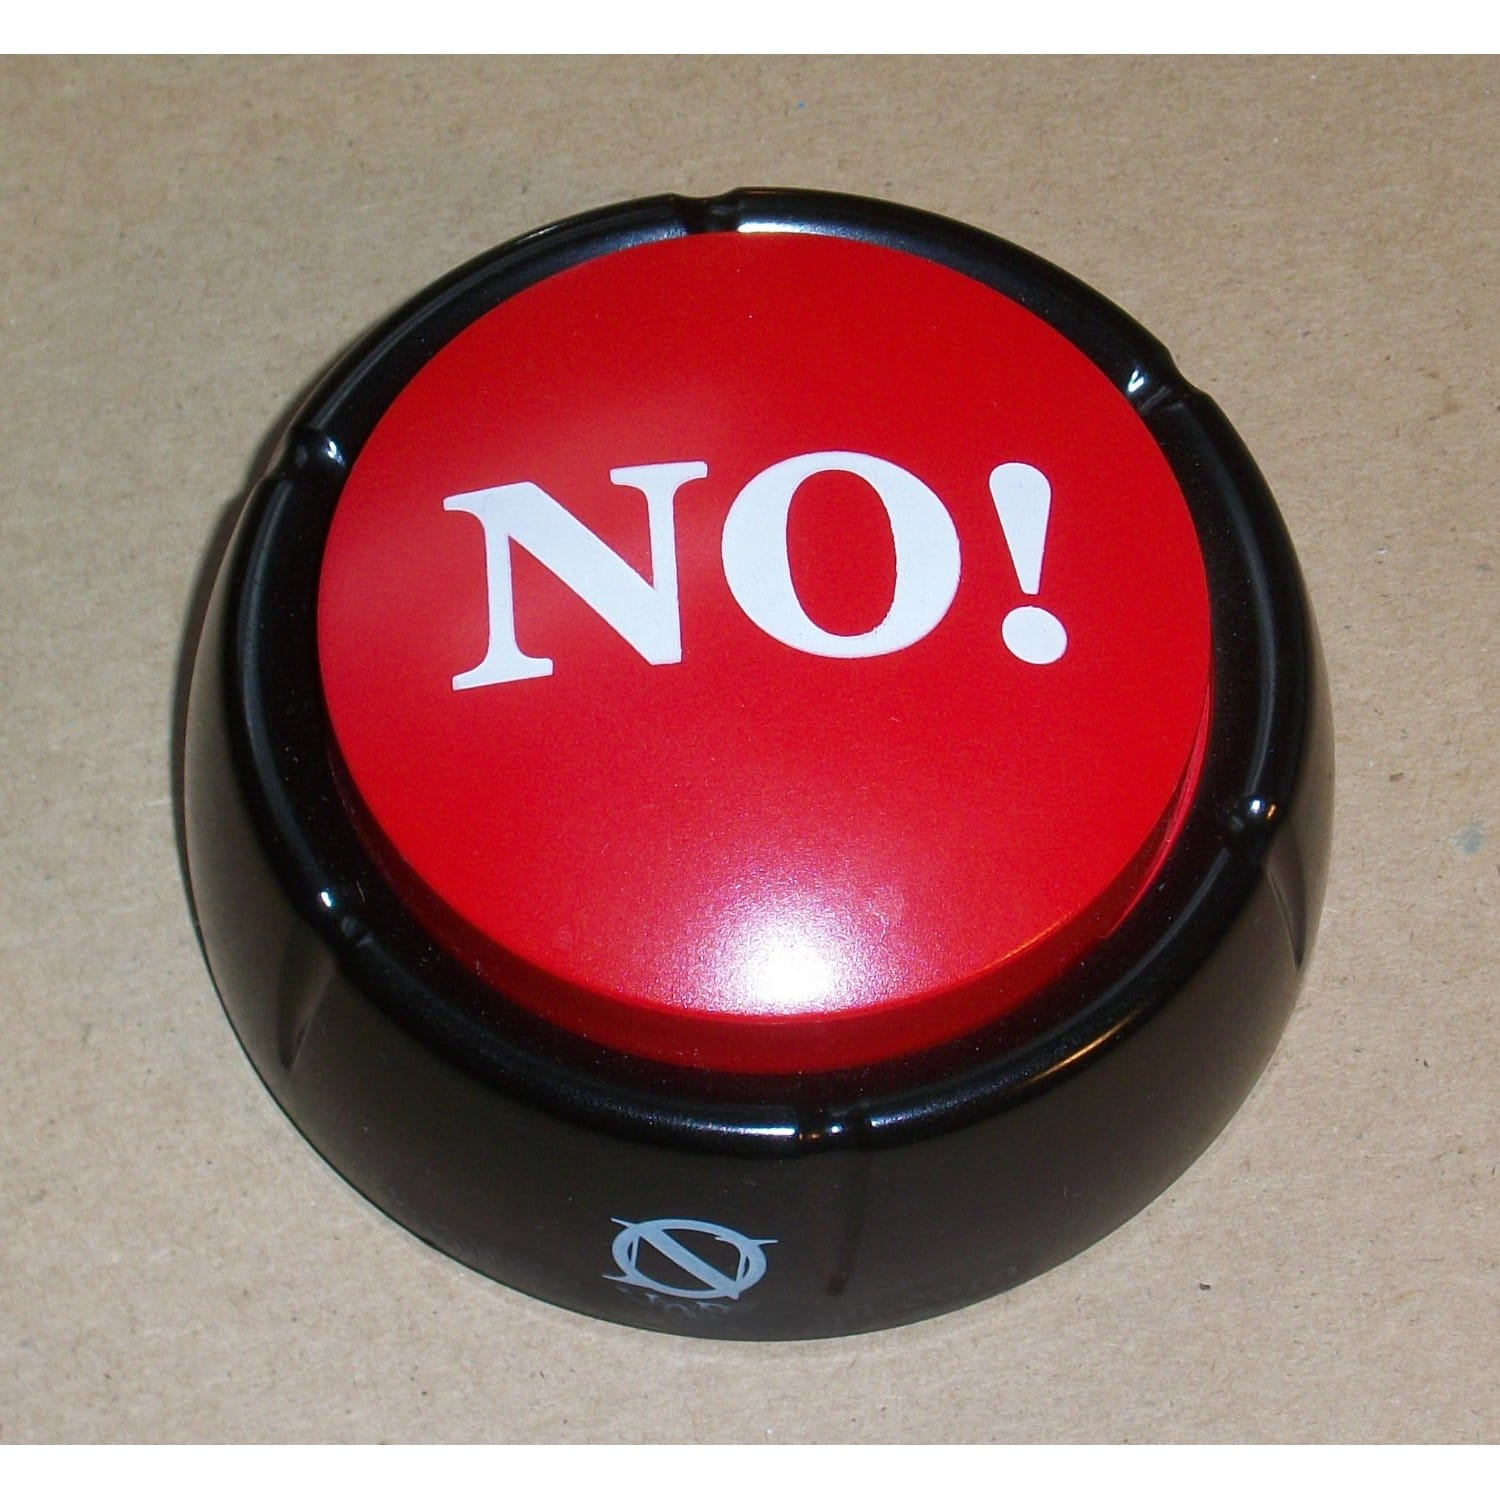 10 Ways to Say No at Work with a No Button